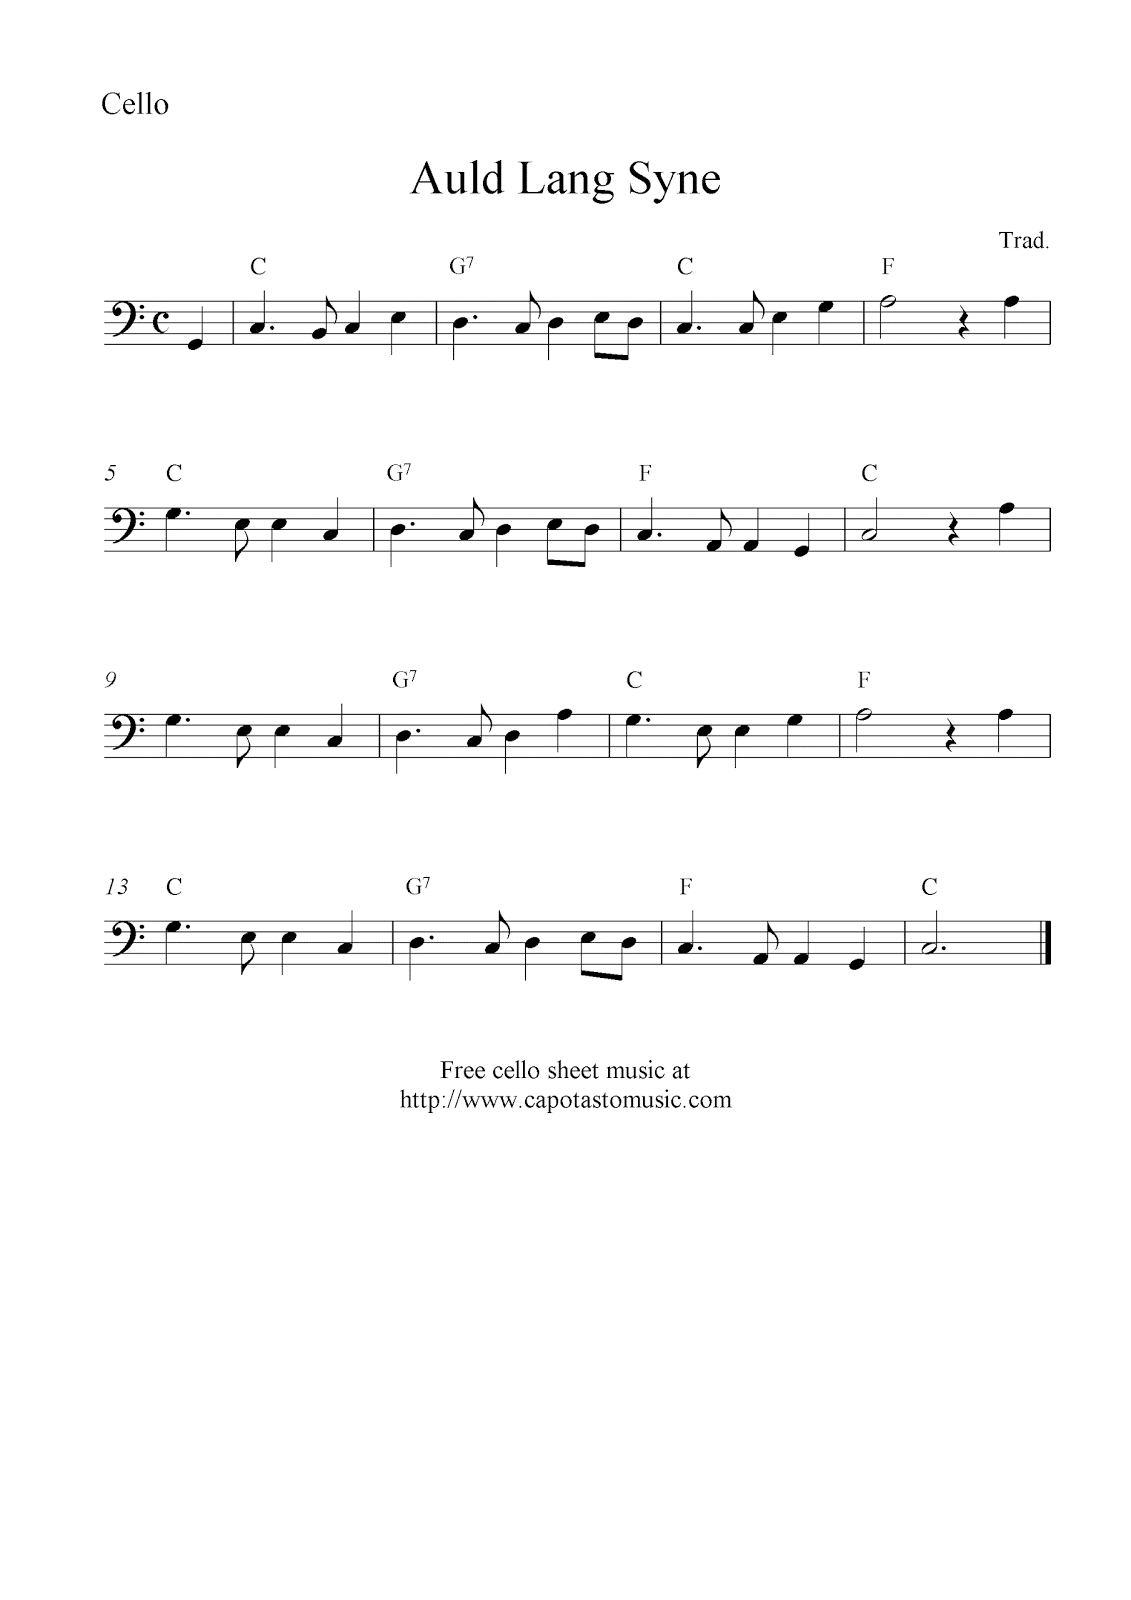 Auld Lang Syne Free Cello Sheet Music Notes